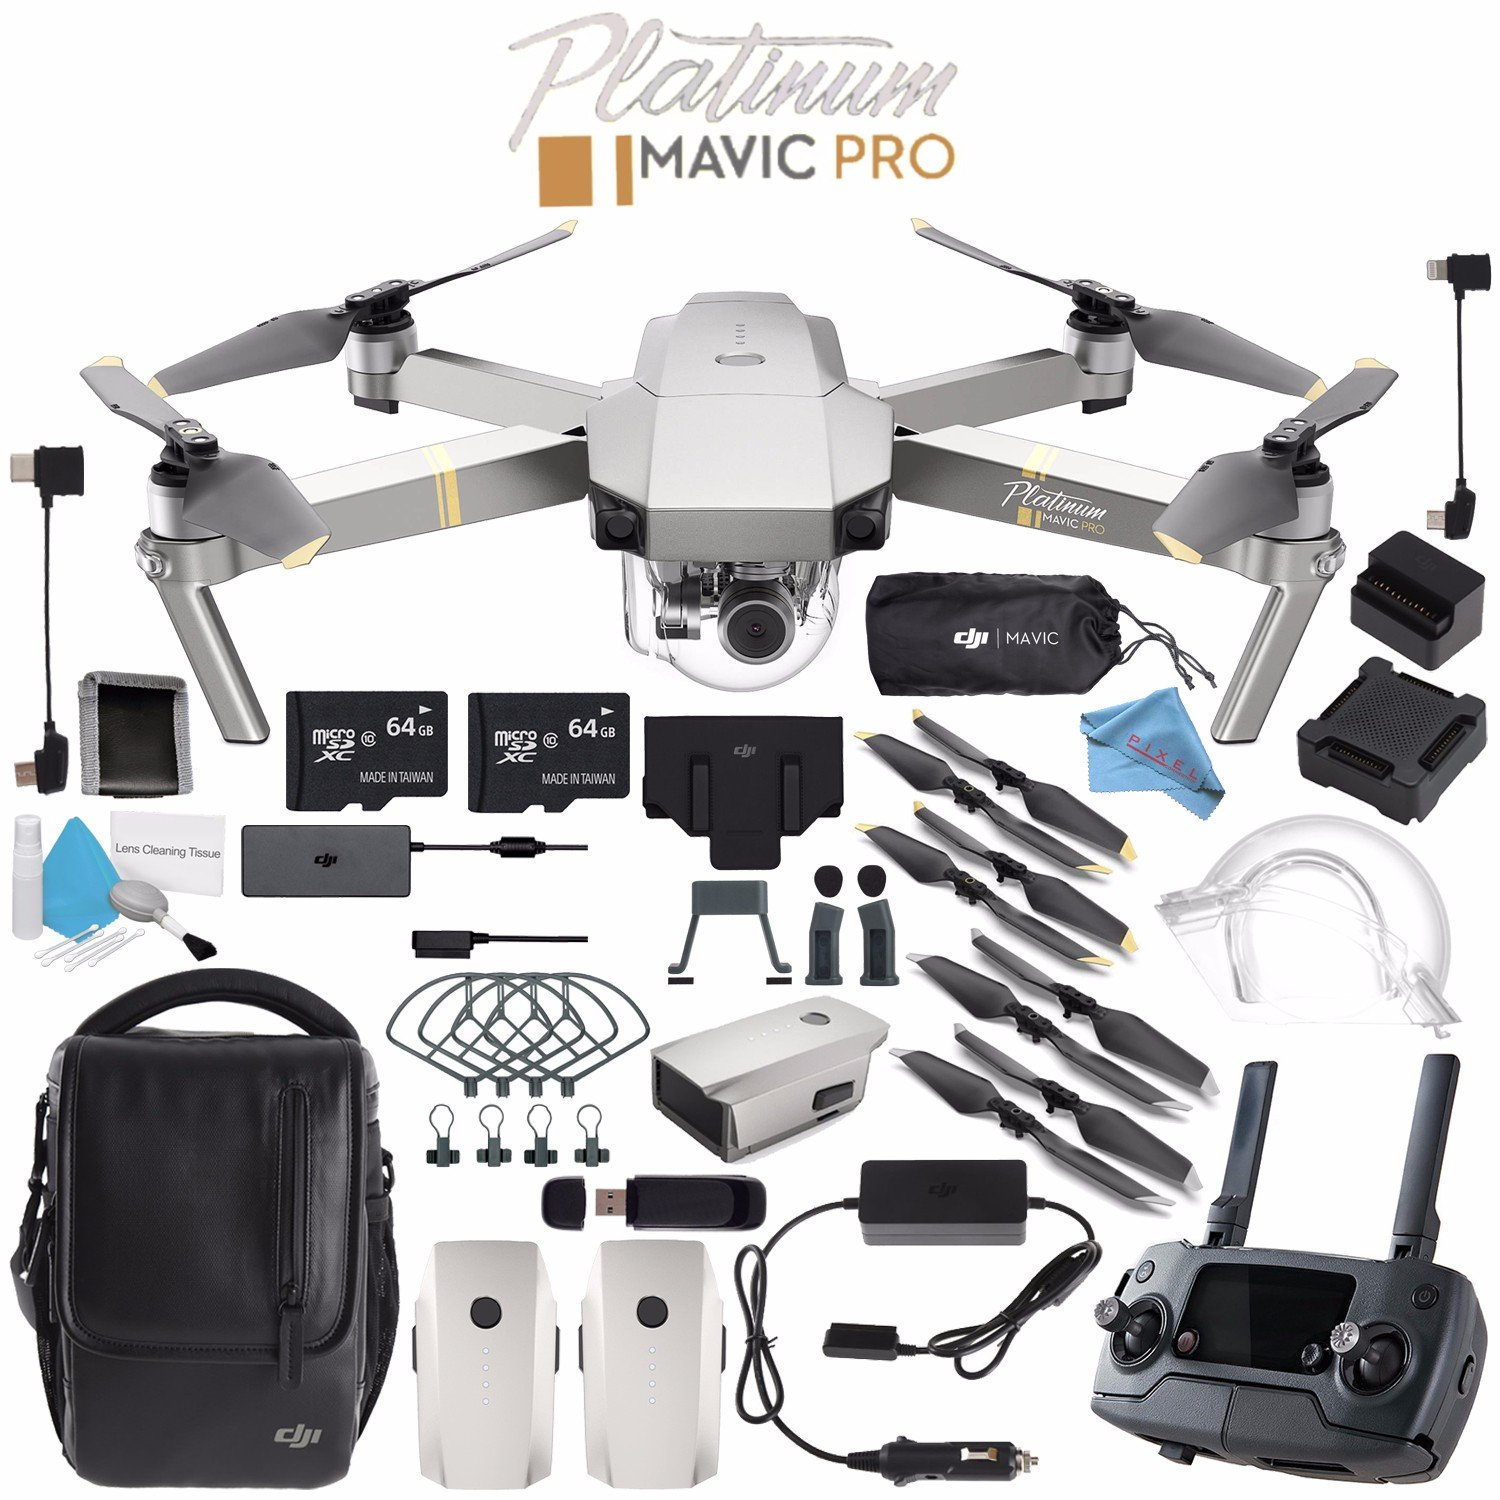 DJI Mavic Pro Platinum CP.PT.00000071.01 + Aircraft Sleeve for Mavic Pro Quadcopter + Mavic Intelligent Flight Battery (Platinum) + Monitor Hood for Rmote Controller + 64GB microSDXC Bundle